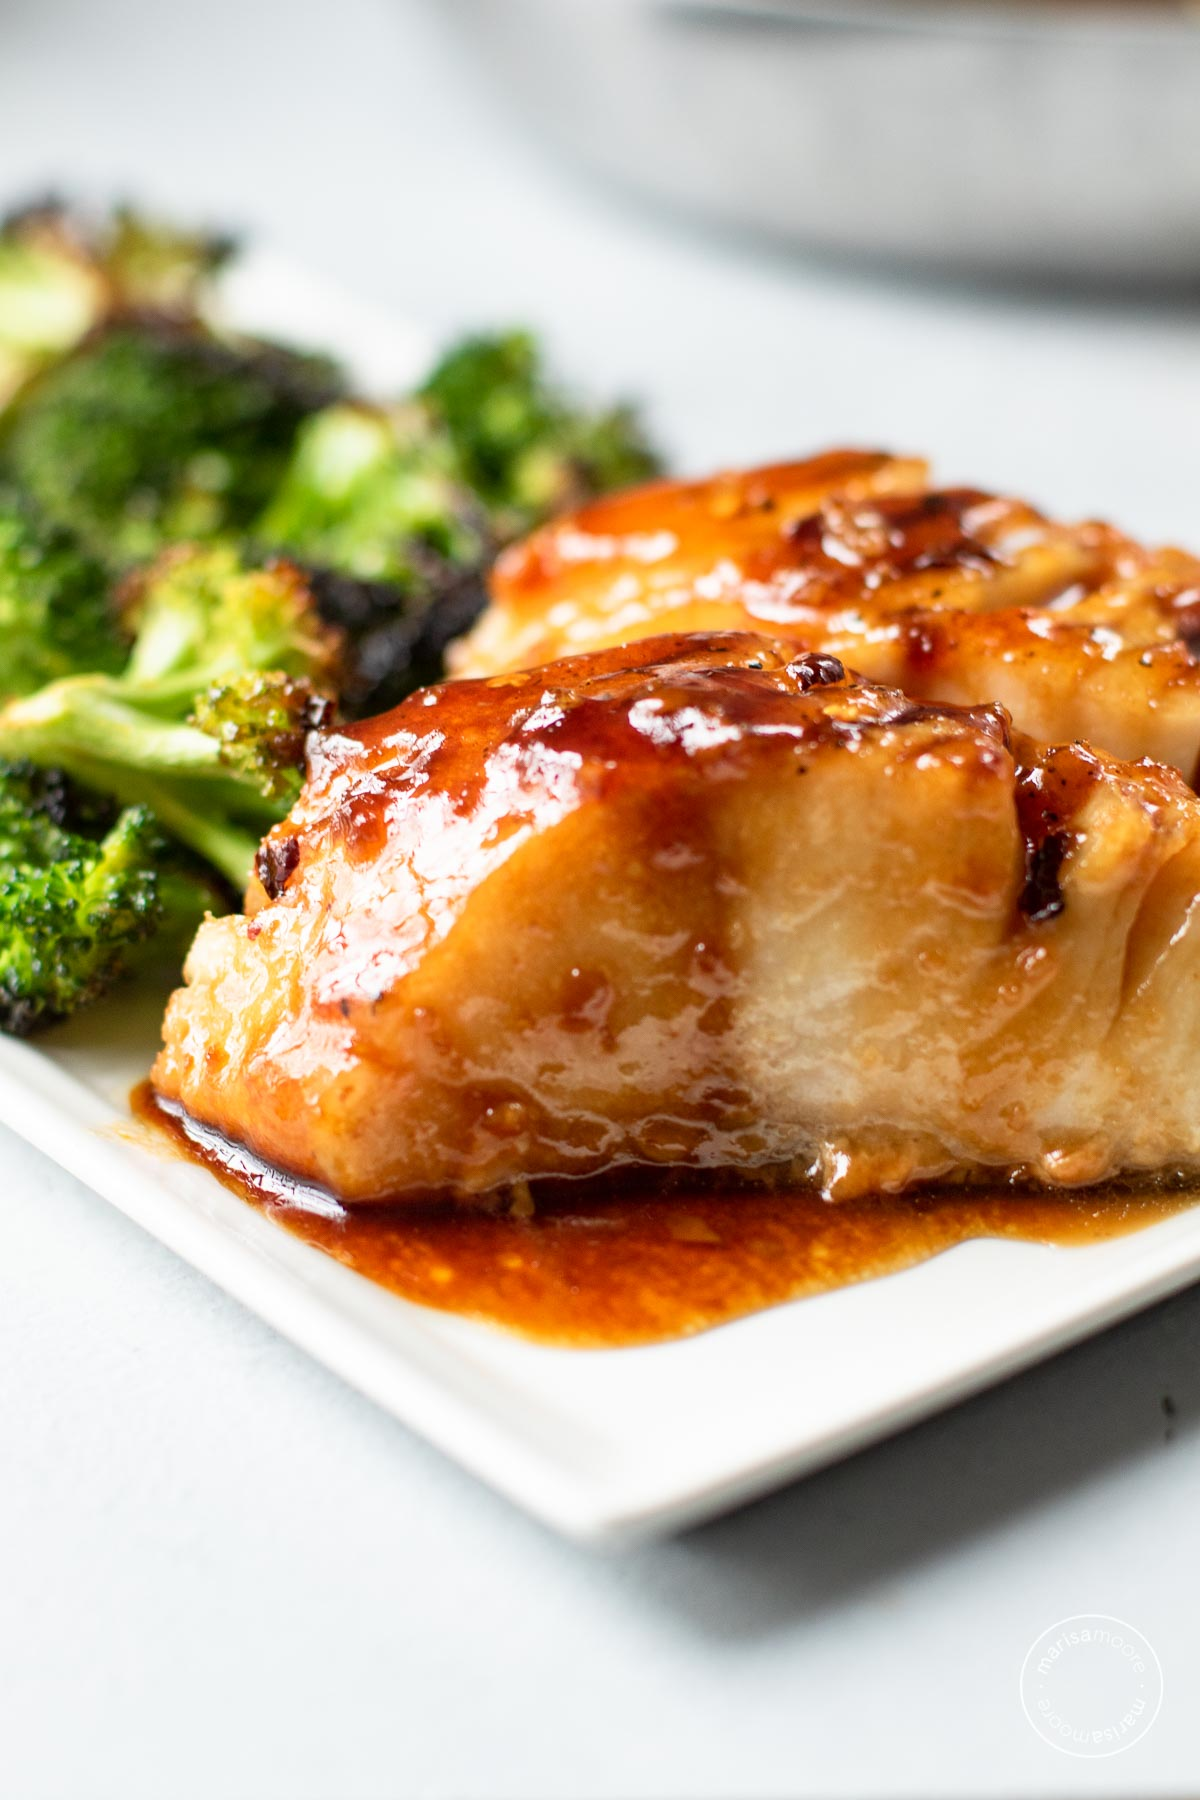 Honey garlic sablefish with broccoli on a white plate.